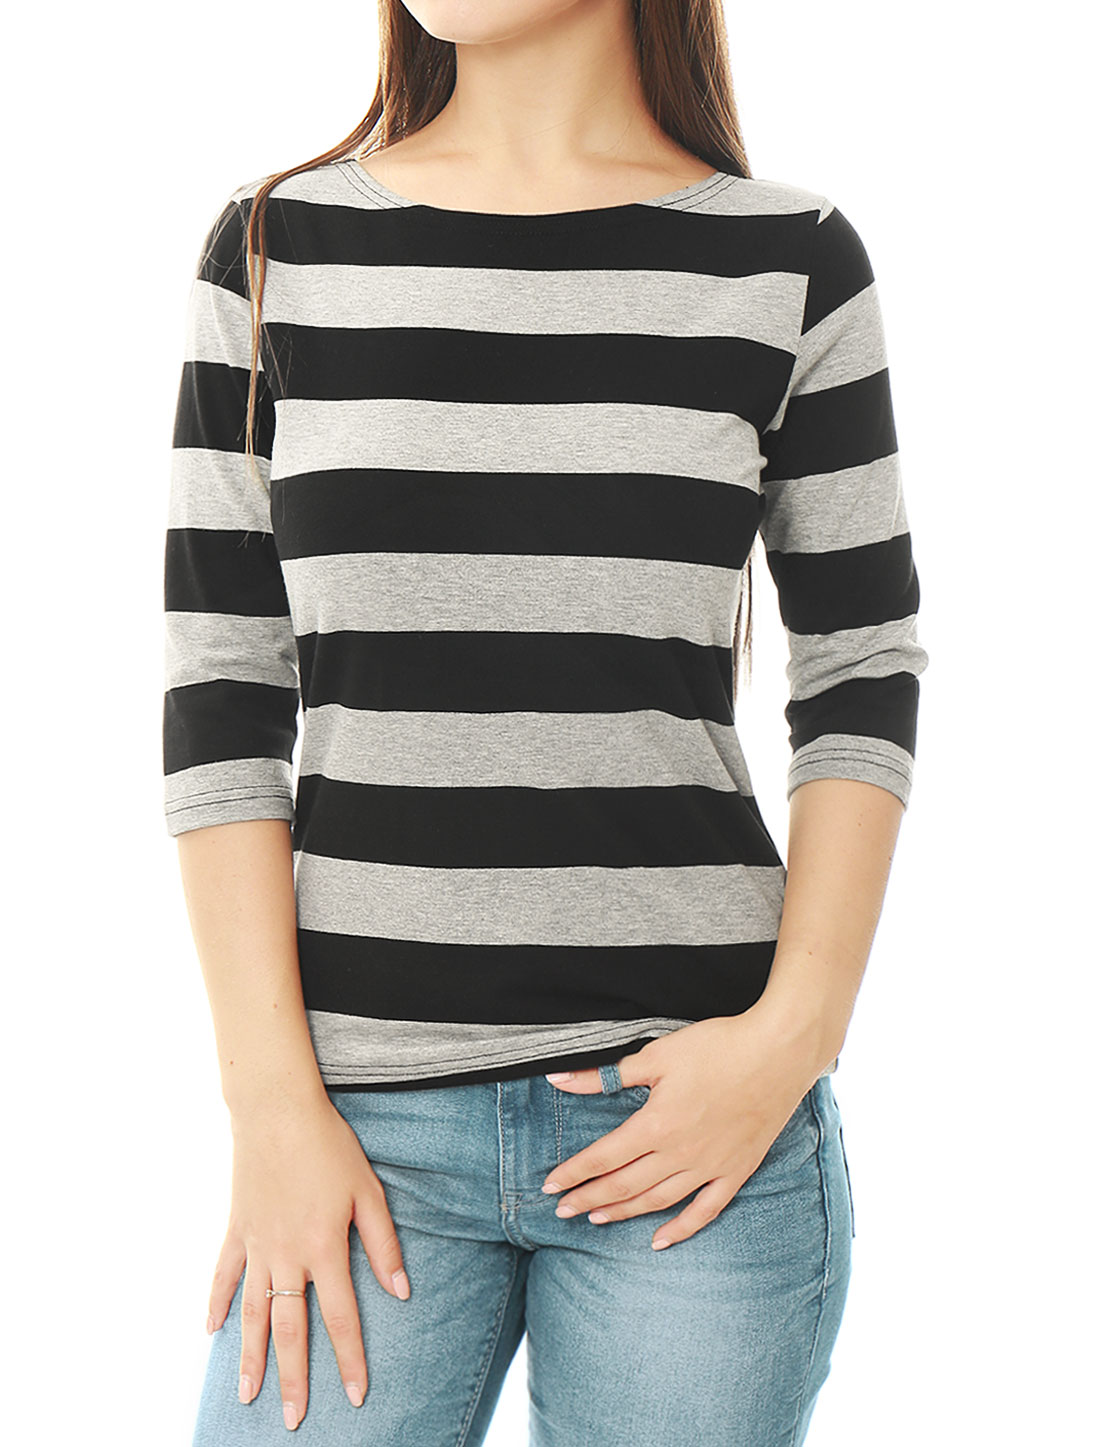 Women Elbow Sleeves Boat Neck Slim Fit Striped Tee Black S